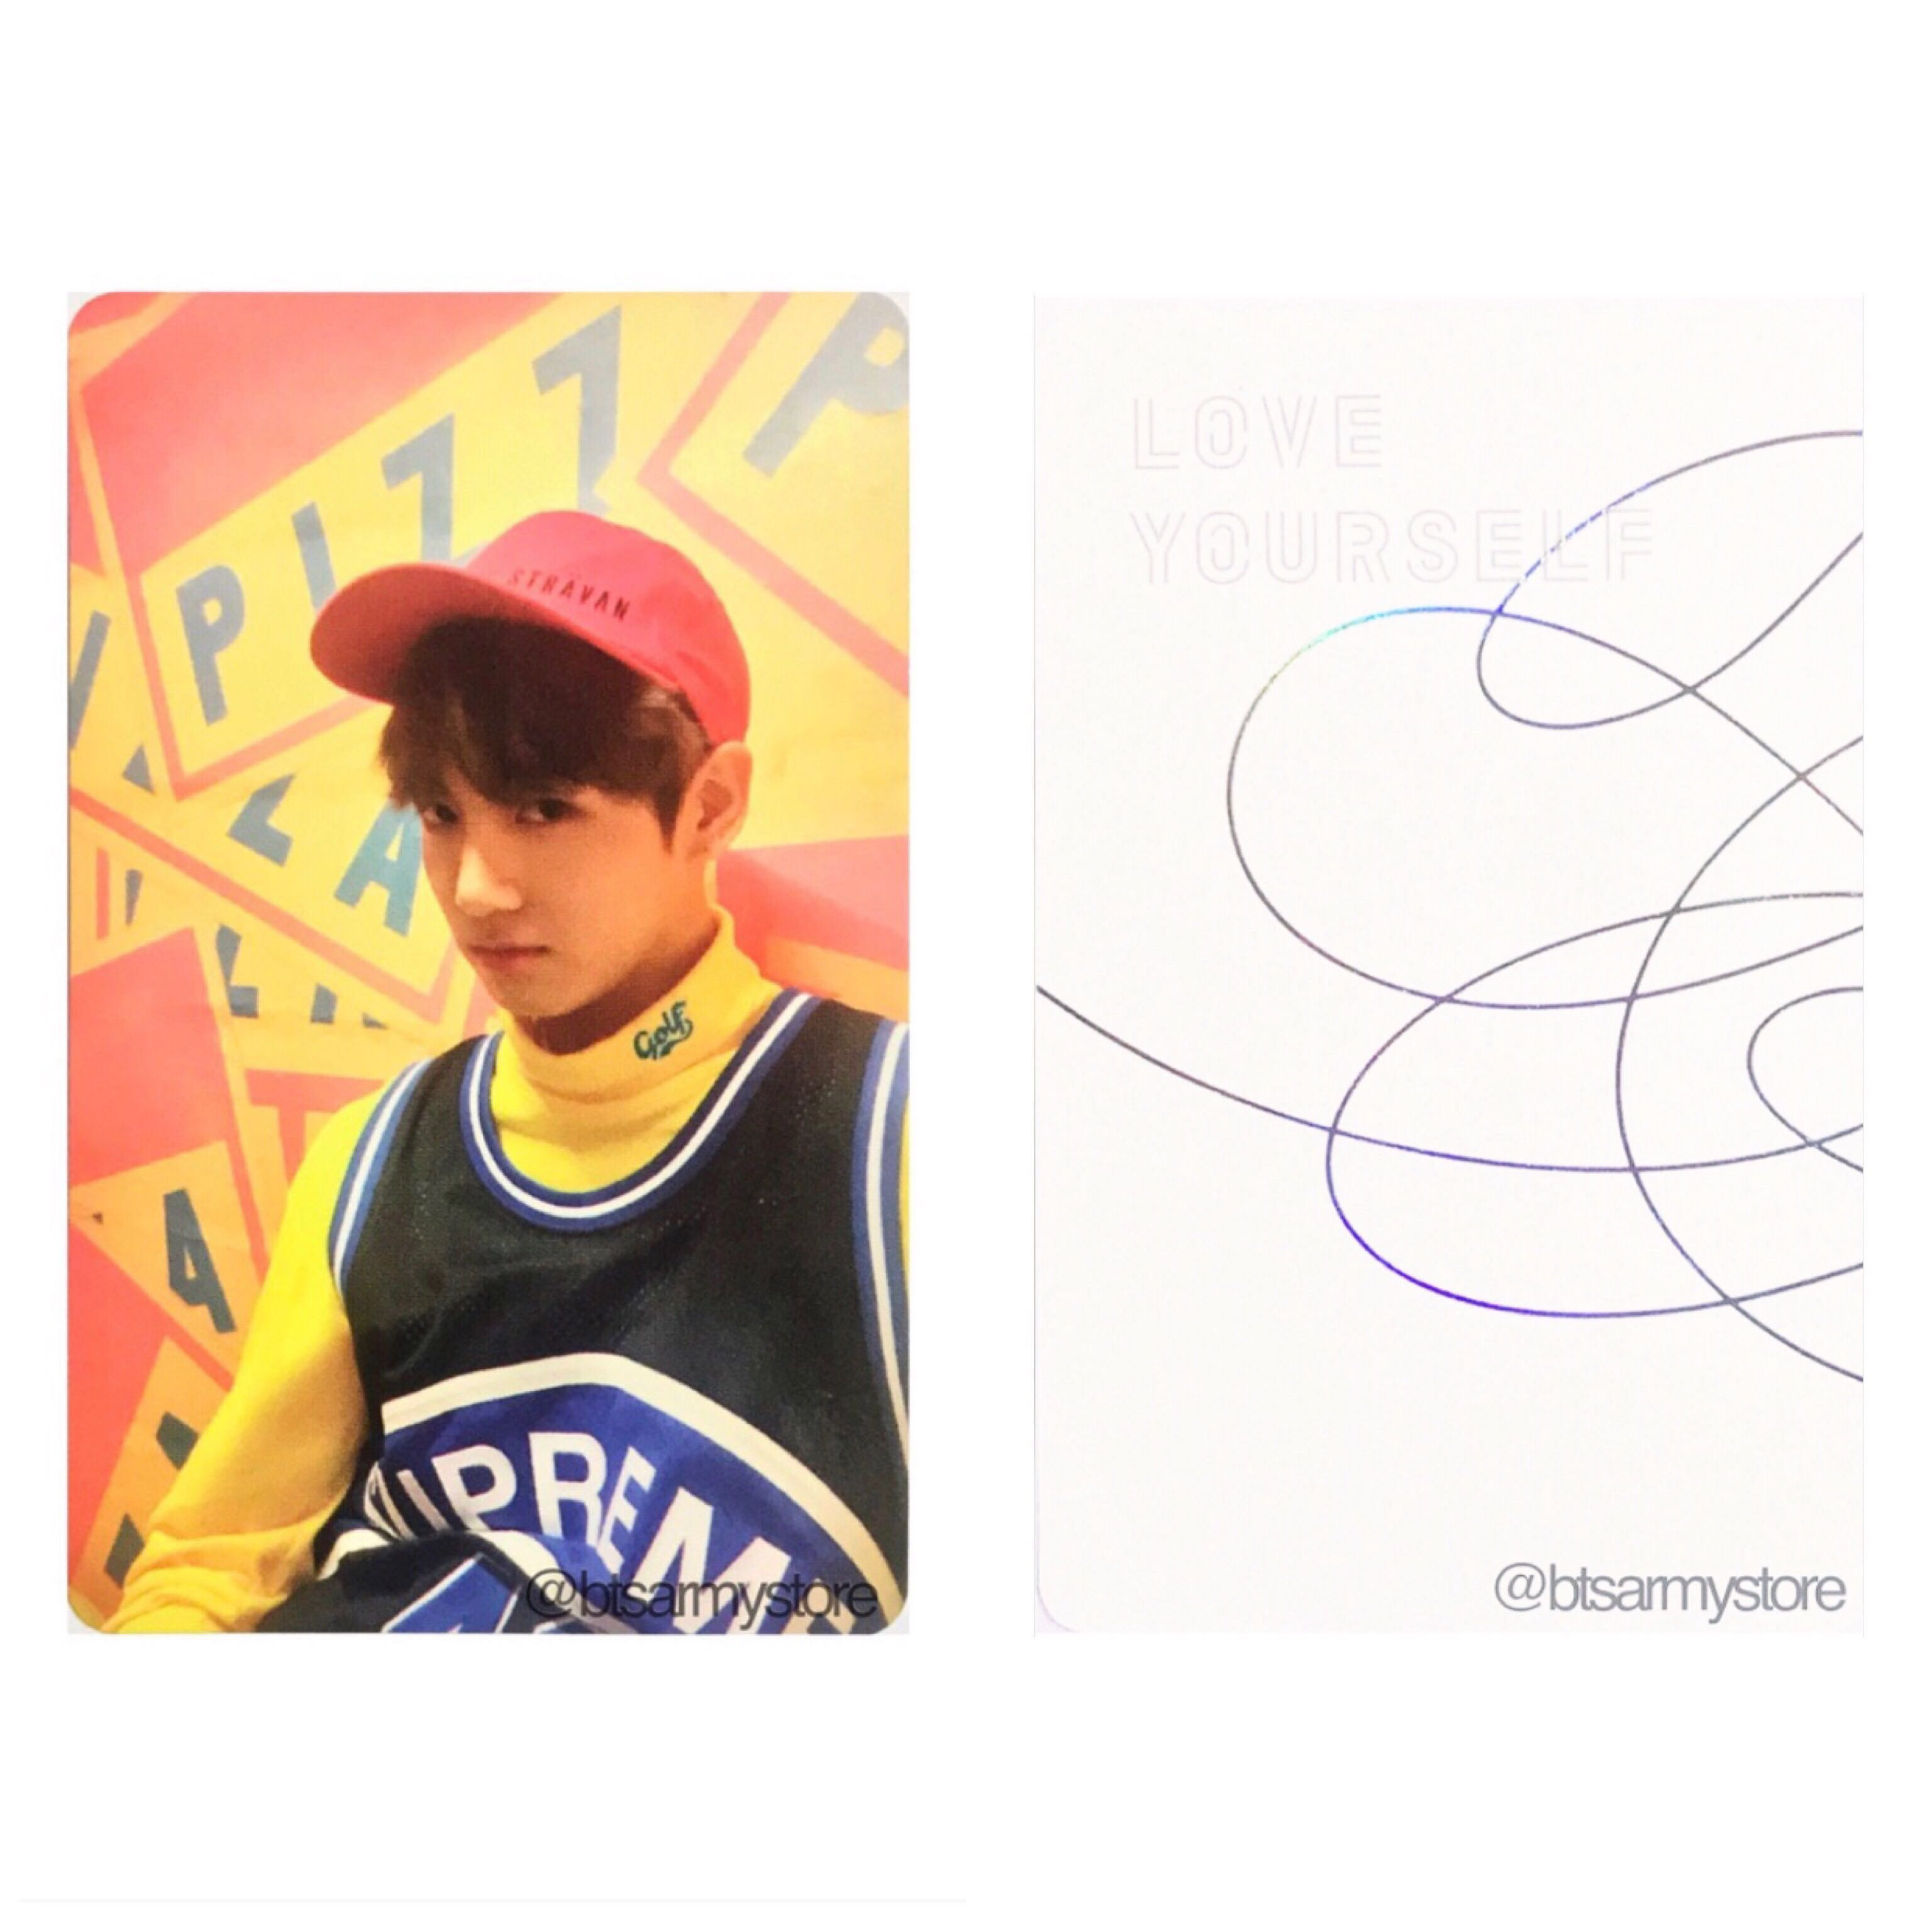 instock bts love yourself her version e jungkook photocard 1527593980 5c2972df